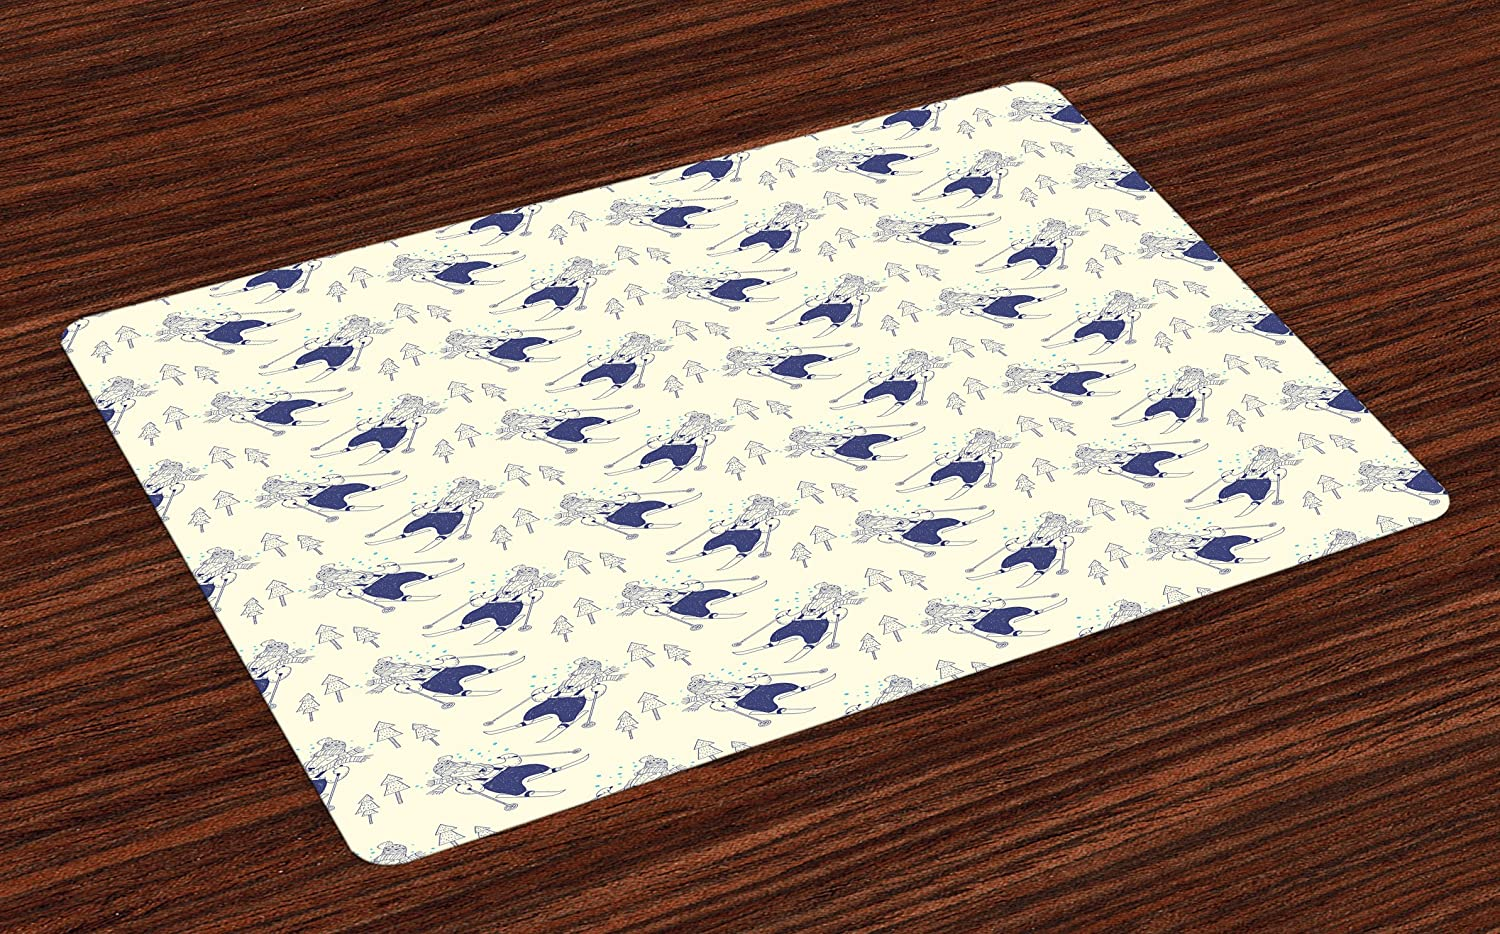 Ambesonne Winter Place Mats Set of 4, Hand Drawn Style Happy Animal Skiing in Snowy Mountain Forest Holiday, Washable Fabric Placemats for Dining Room Kitchen Table Decor, Ivory Dark Blue Pale Blue